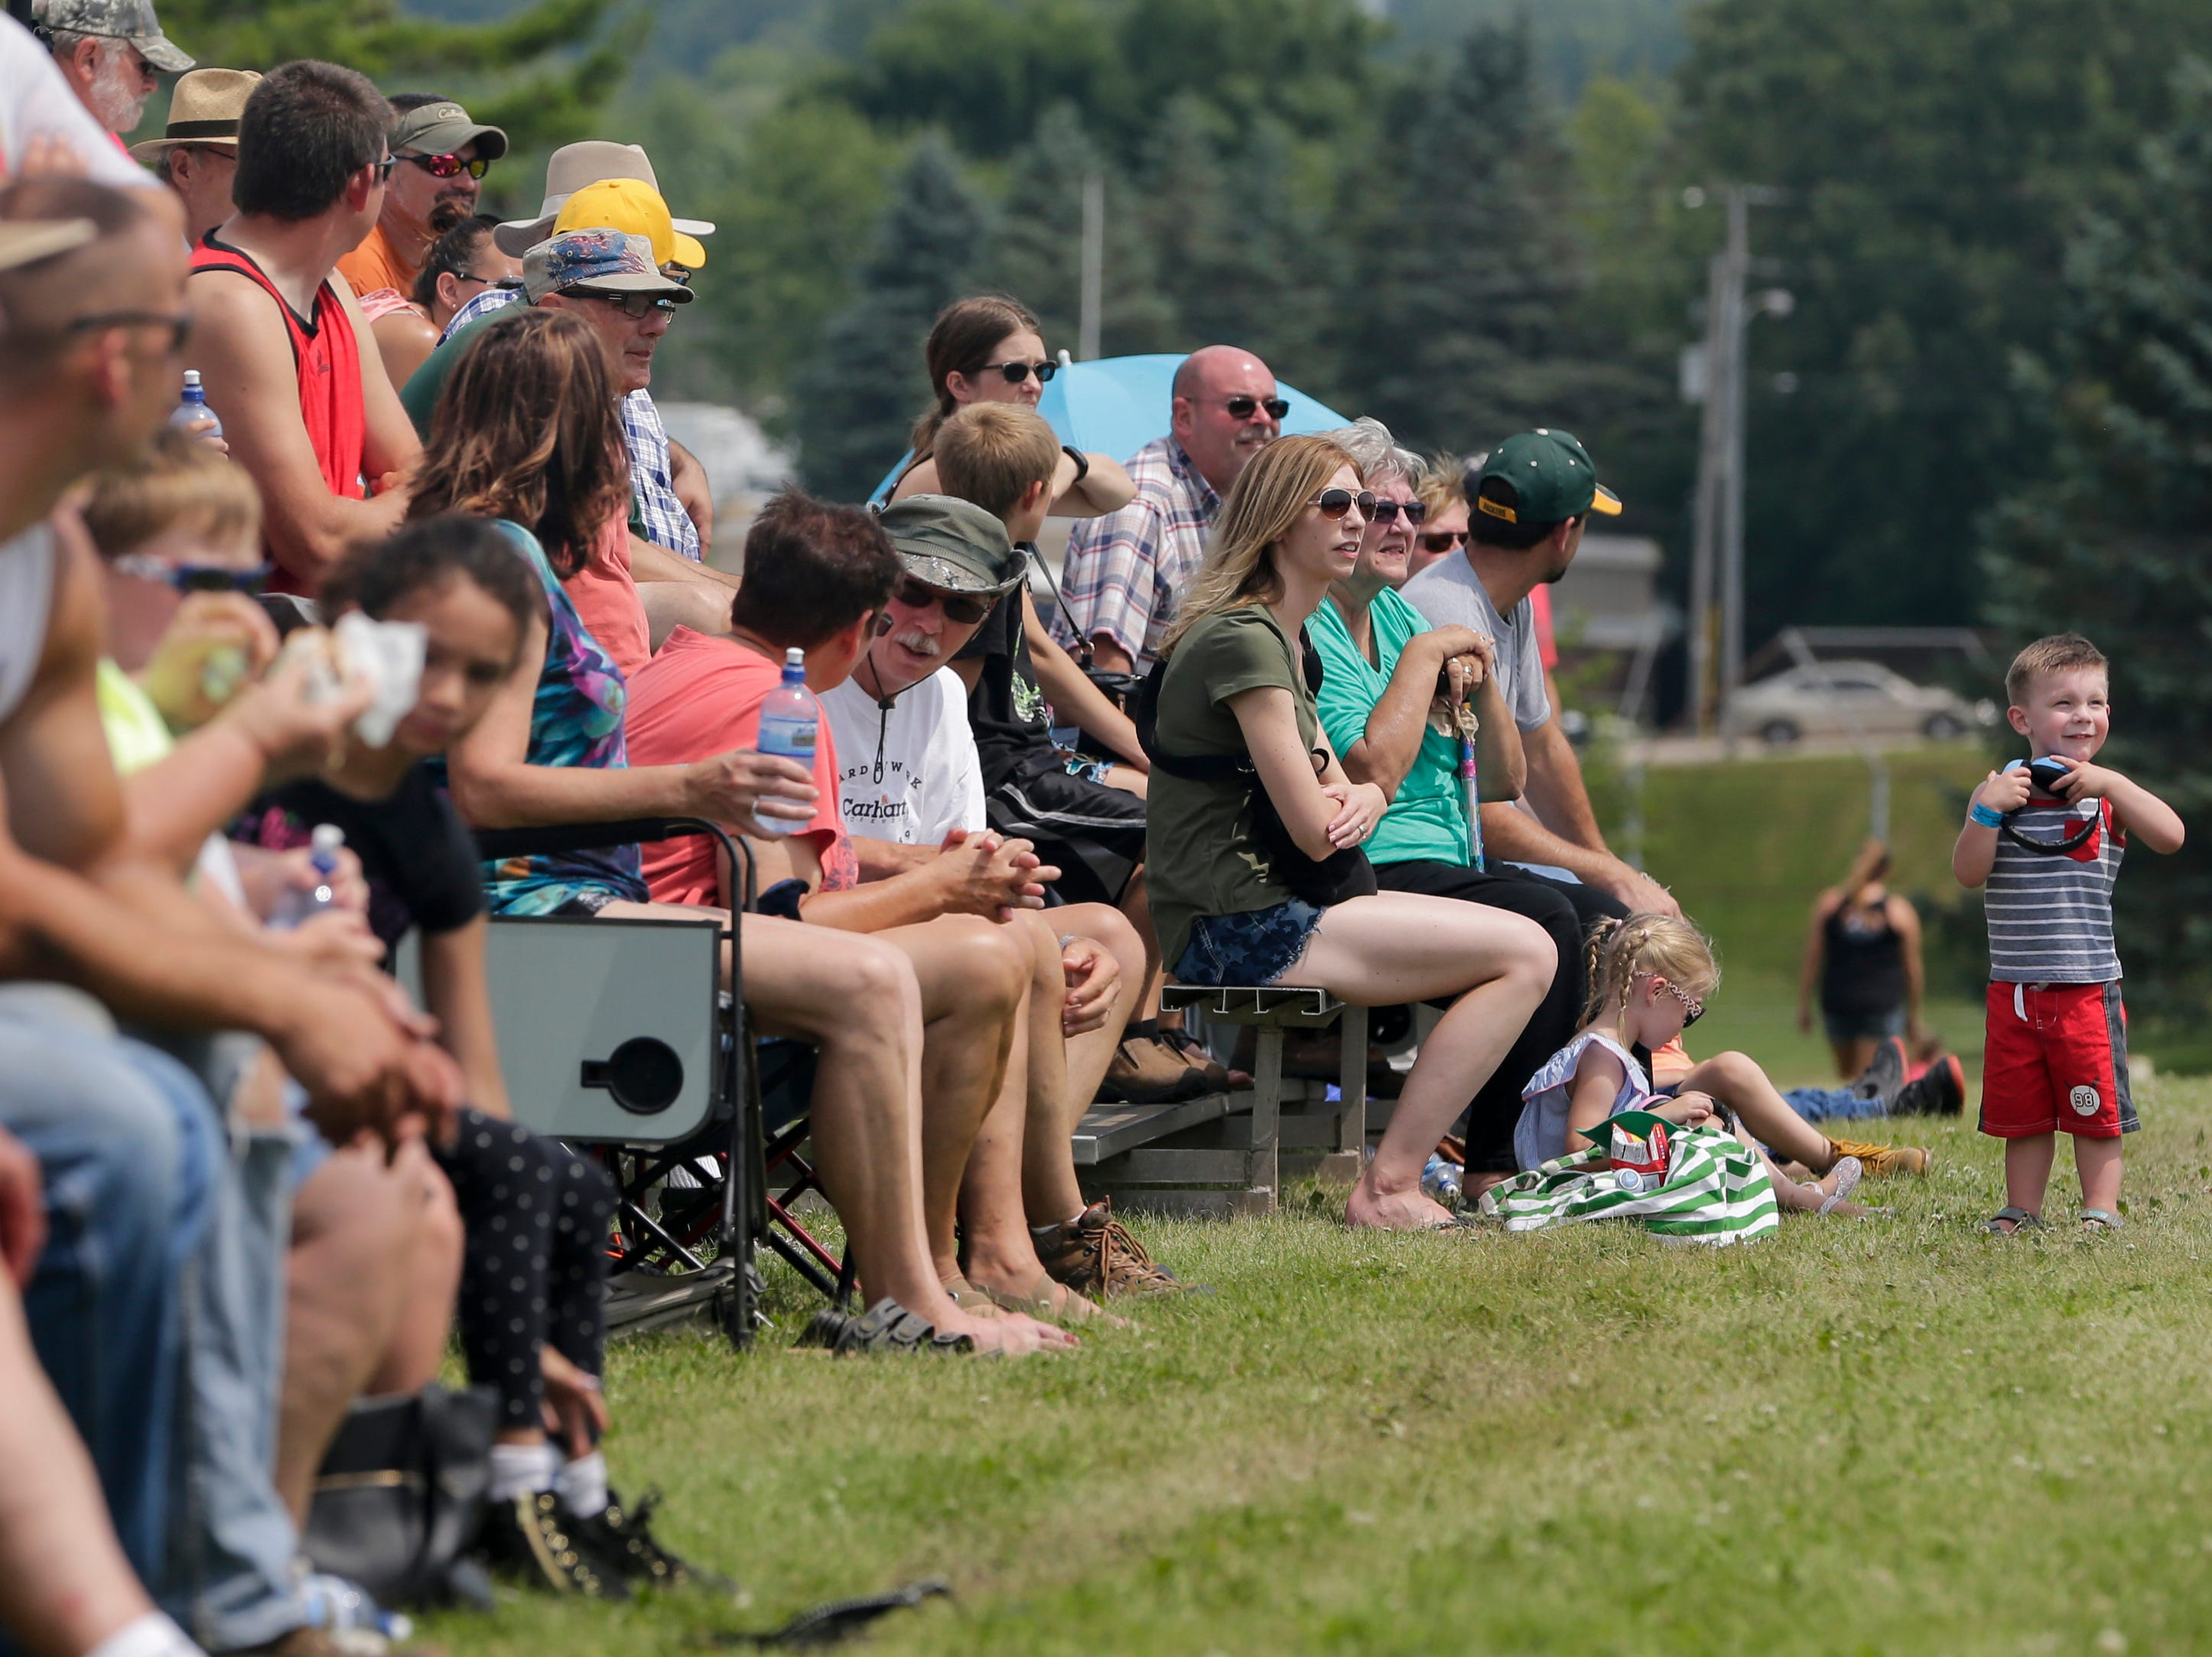 The crowd watches the tractor pull during Mishicot Riverfest Saturday, August 4, 2018, in Mishicot, Wis. Josh Clark/USA TODAY NETWORK-Wisconsin